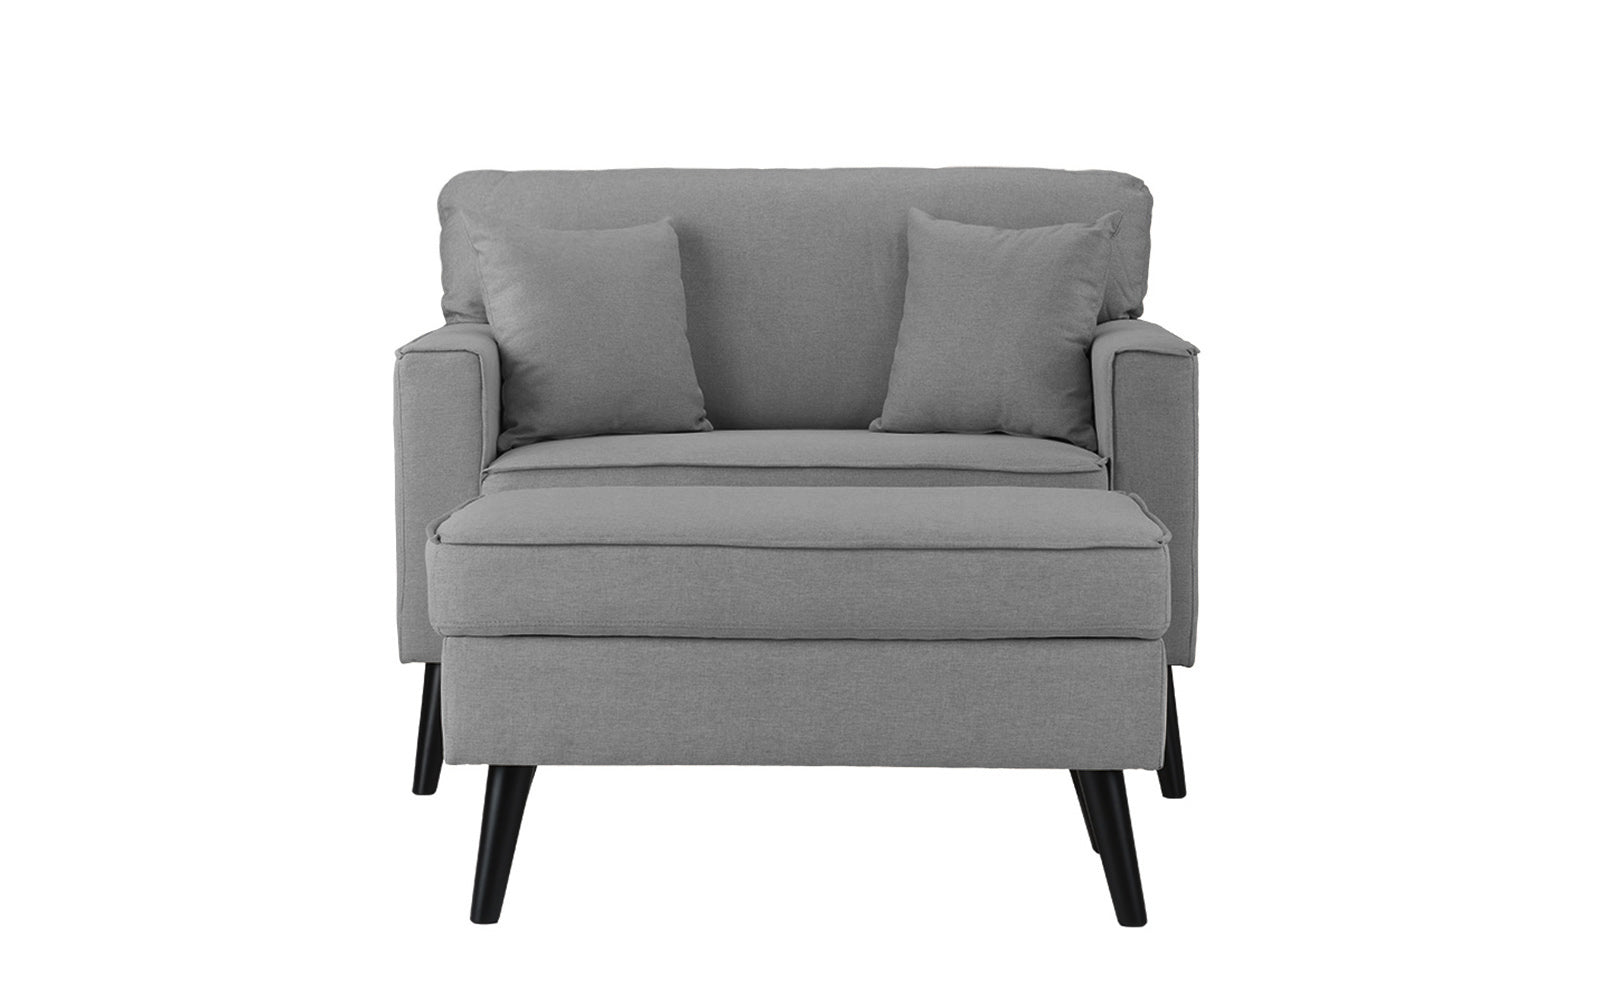 Timothy Modern Accent Chair with Footrest and Storage Compartment  sc 1 st  Sofamania & Timothy Mid Century Oversized Accent Chair with Footrest | Sofamania.com